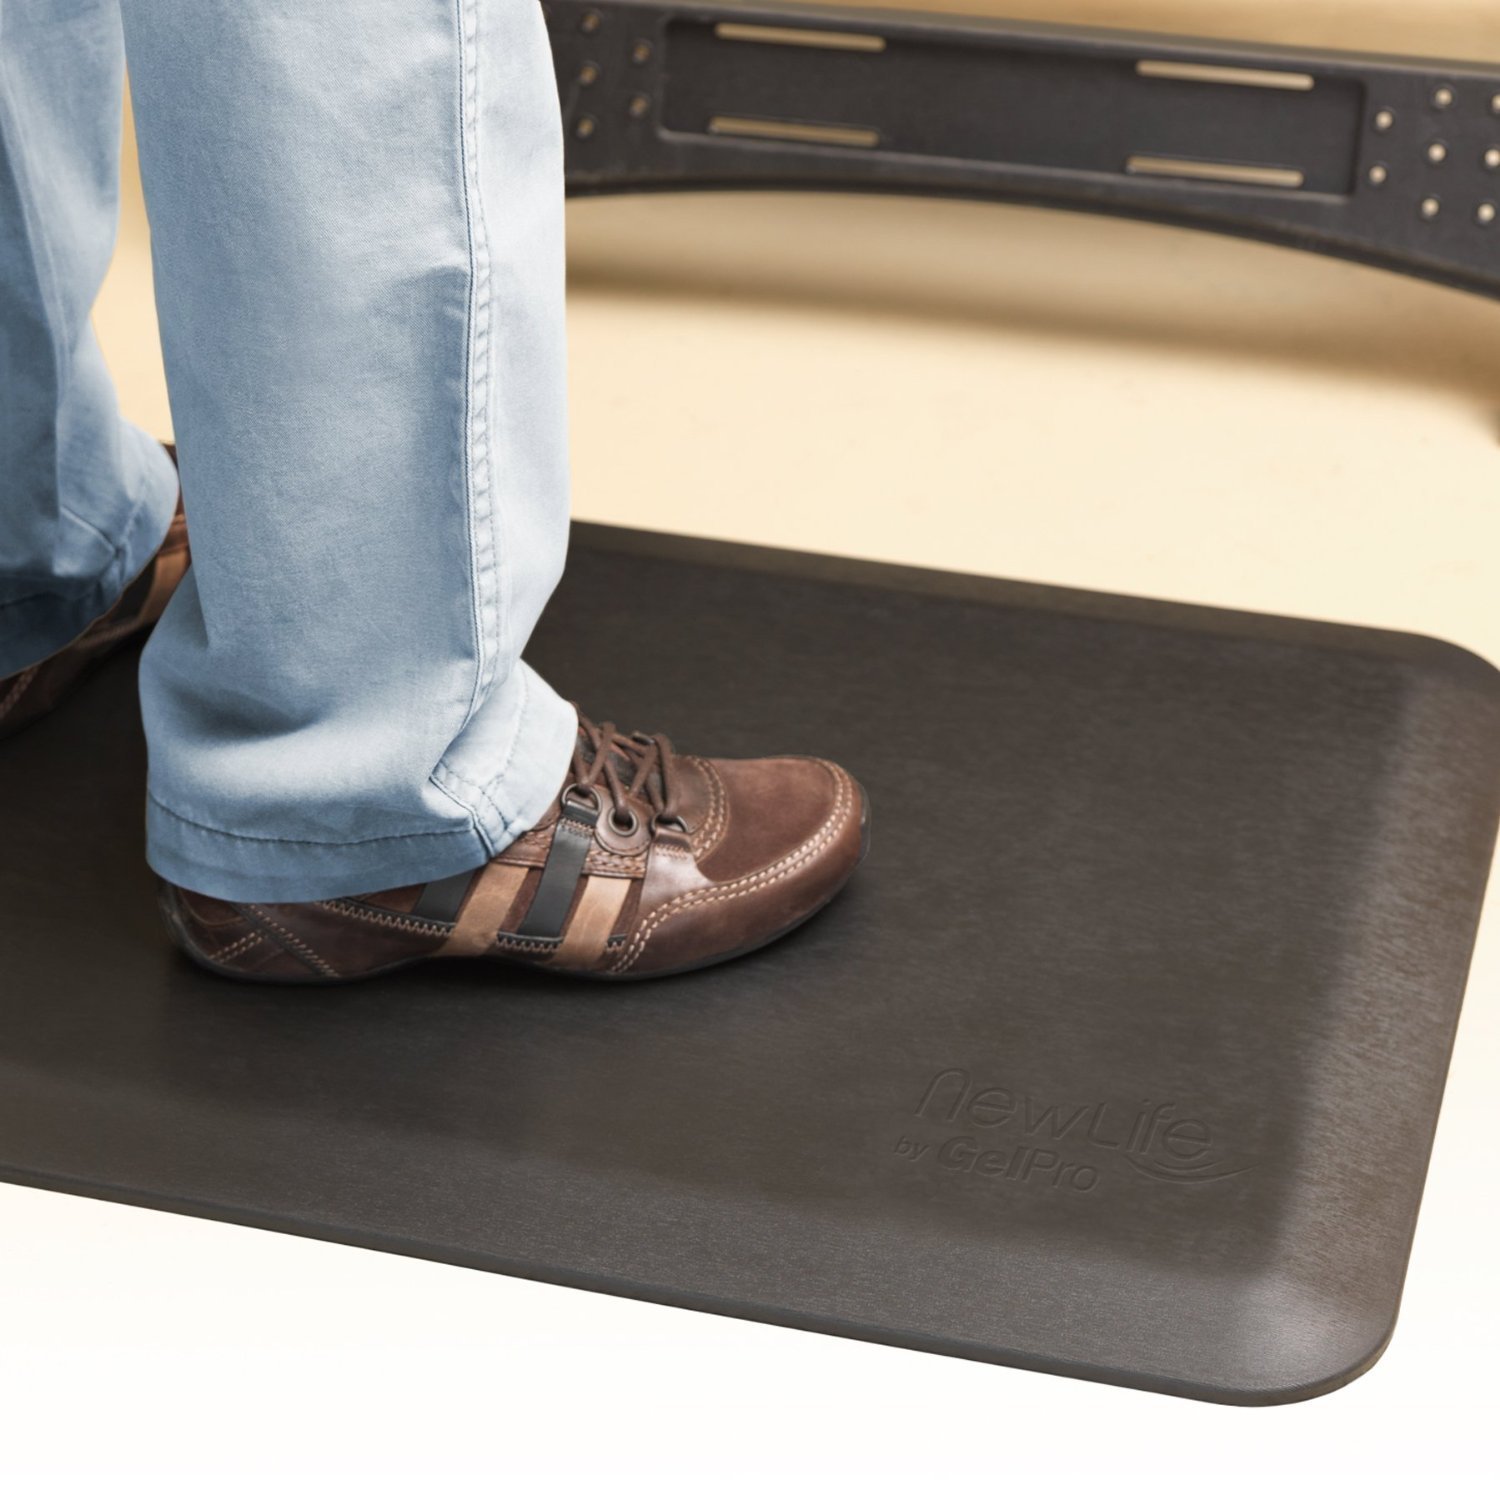 Shoe Mats Buy Newlife Eco Pro By Gelpro Eco Pro Work Floor Mat 20 Inch By